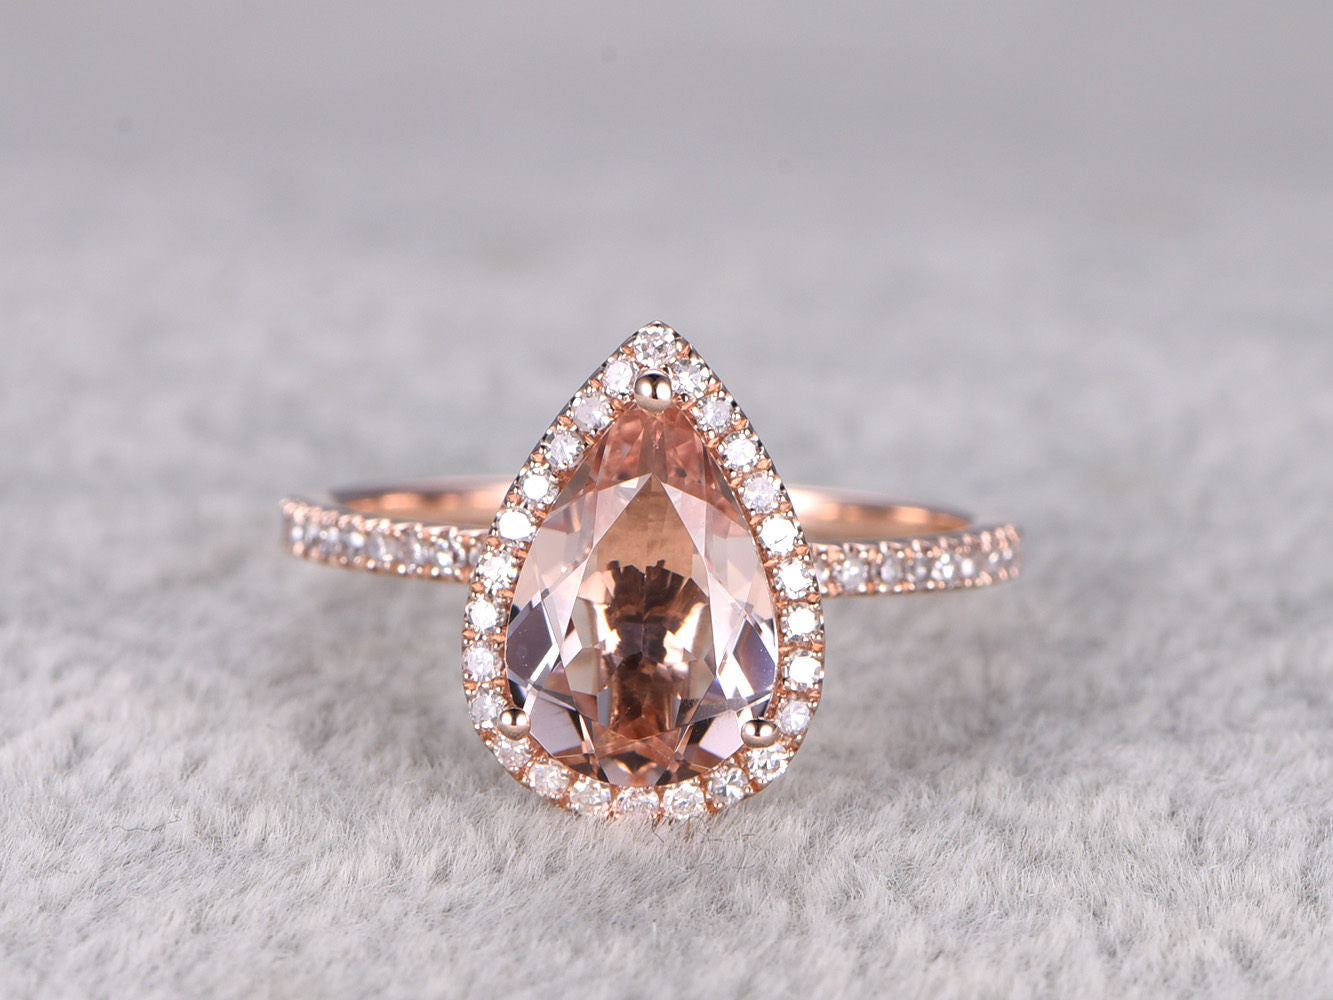 7x10mm Pear Cut Morganite Engagement ring Rose gold,Diamond wedding band,14k,Pear Shaped,Gemstone Promise Bridal Ring,Halo,Prongs,Pave Set